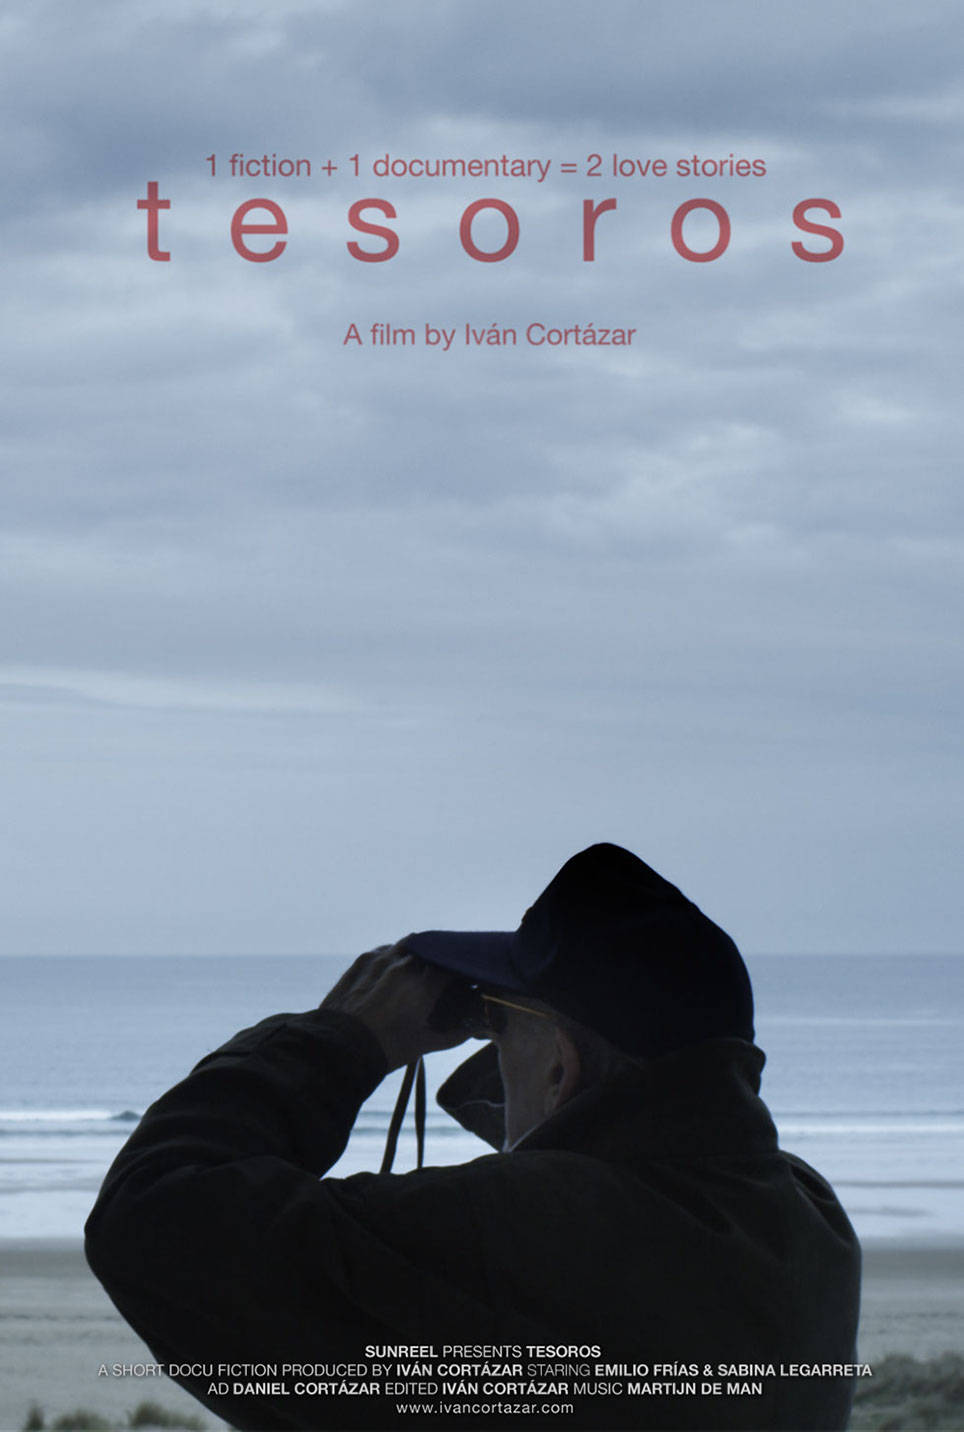 Poster for the short film Tesoros featuring a man with binoculars on an empty beach